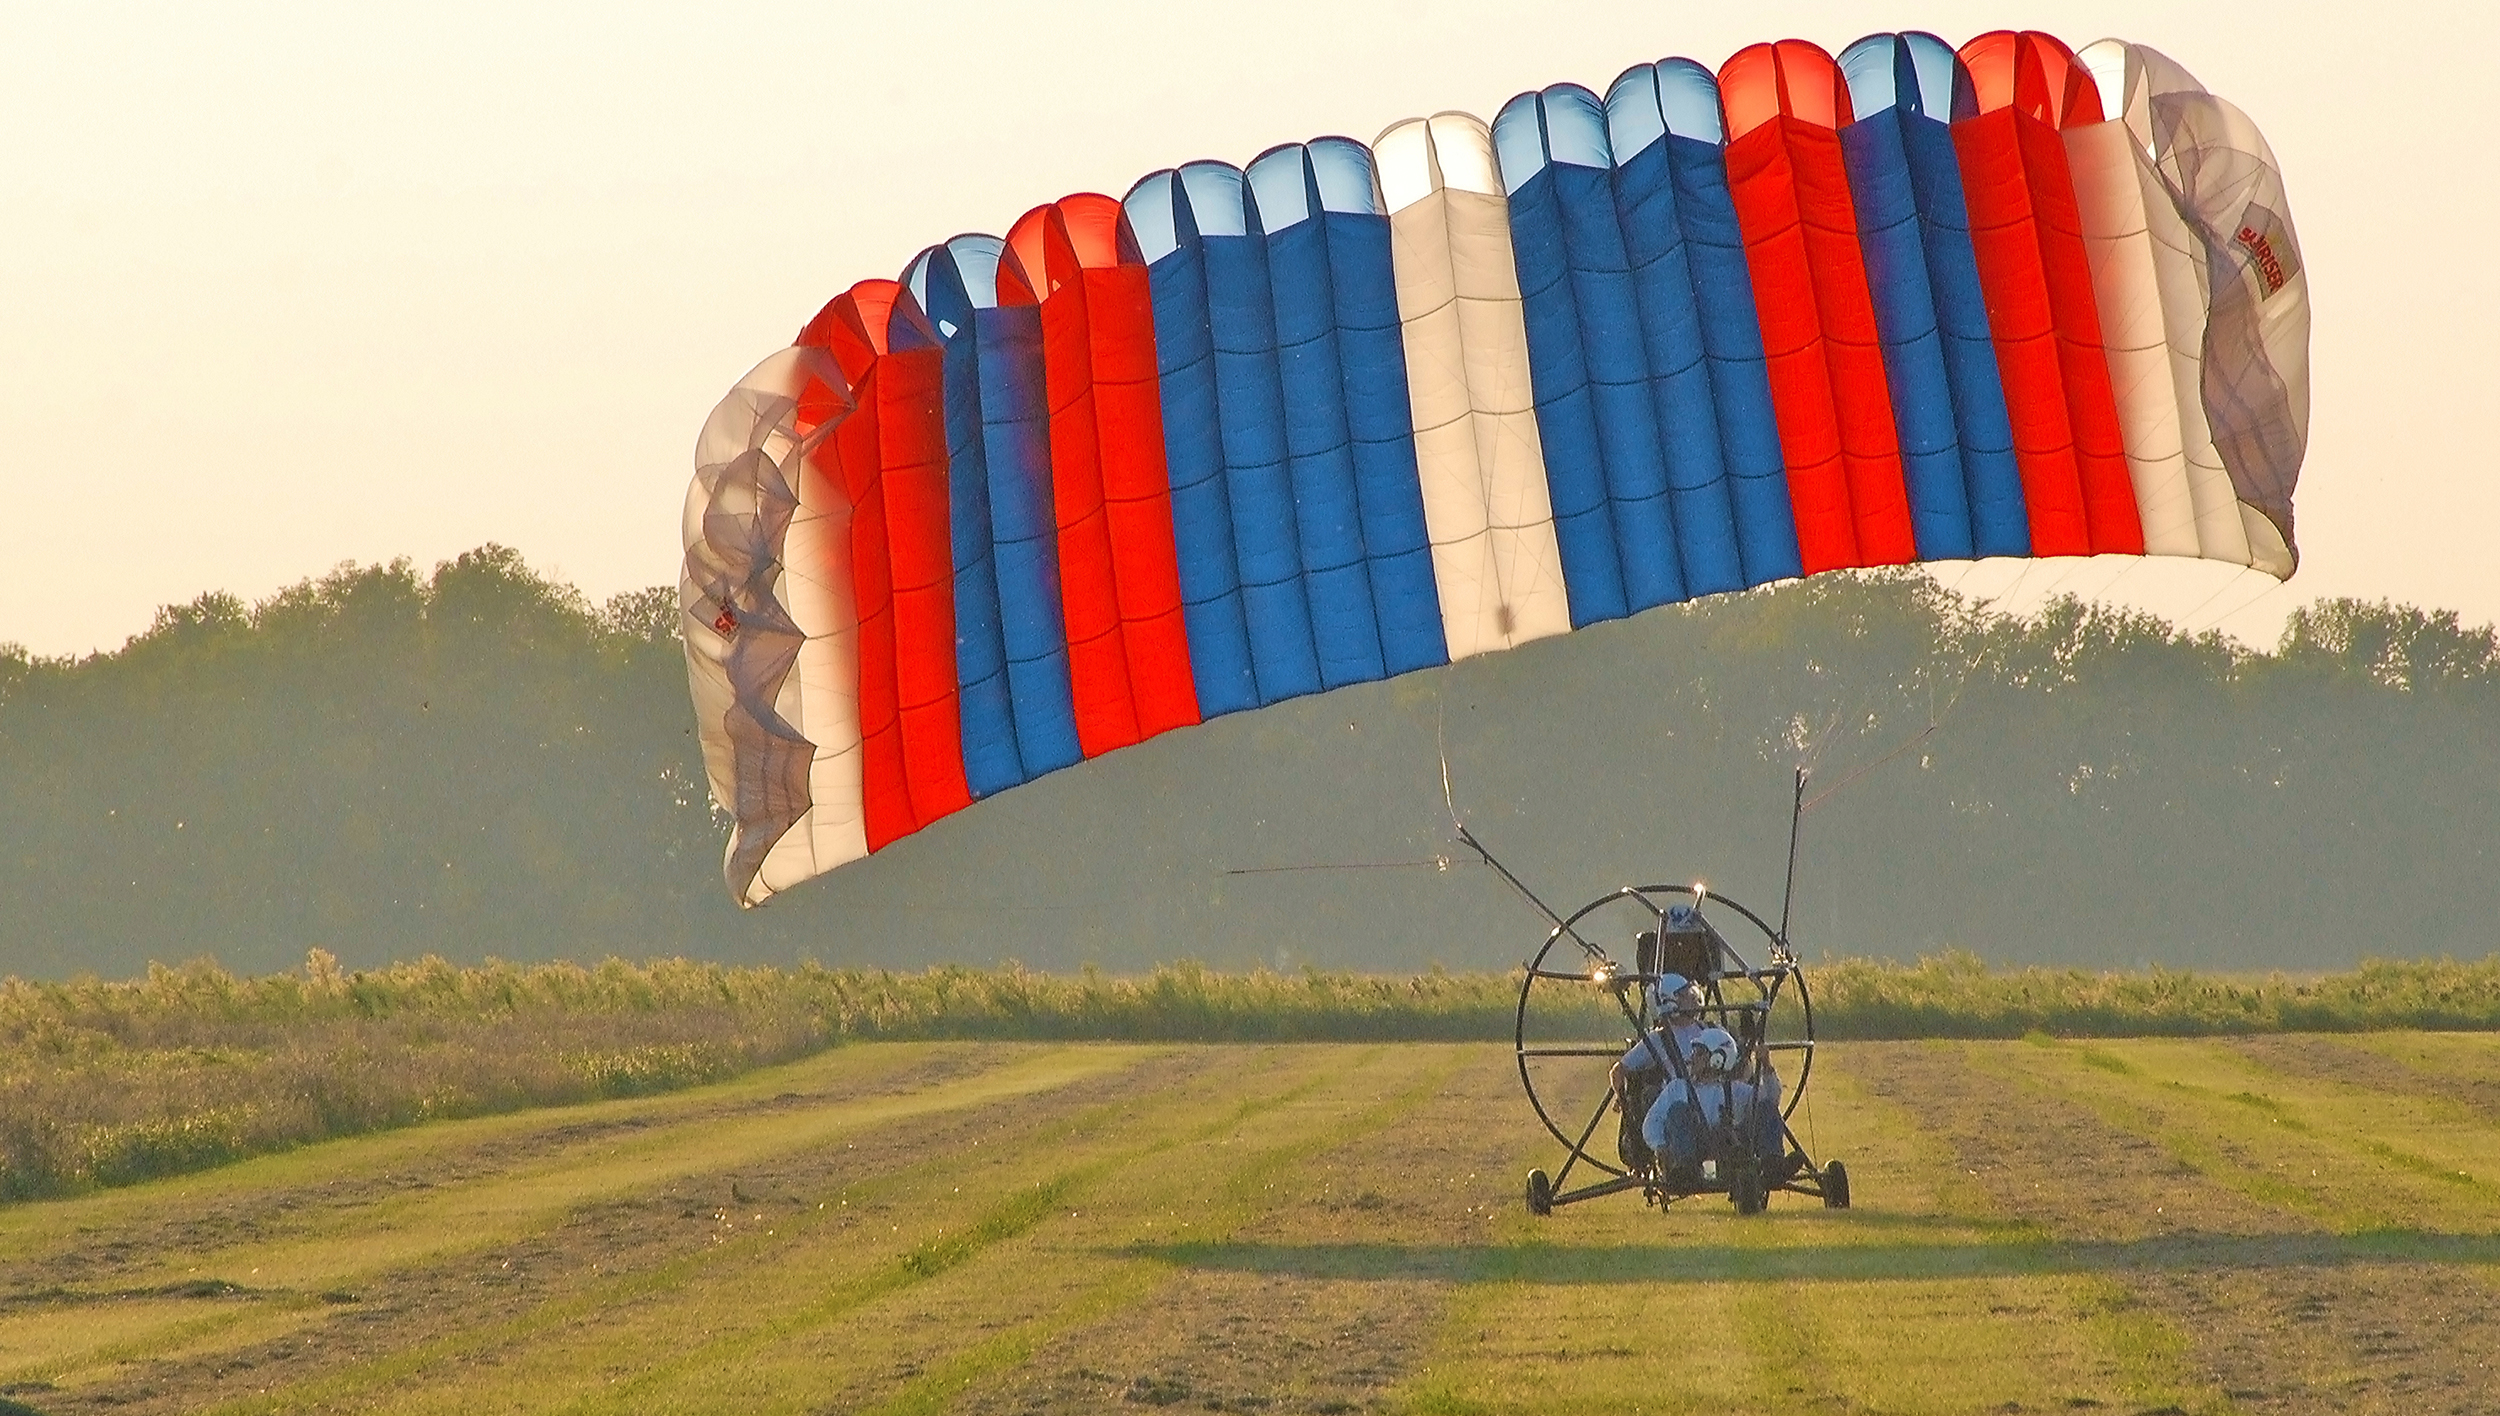 Powered Parachute Taking Off at the Greenville Airport